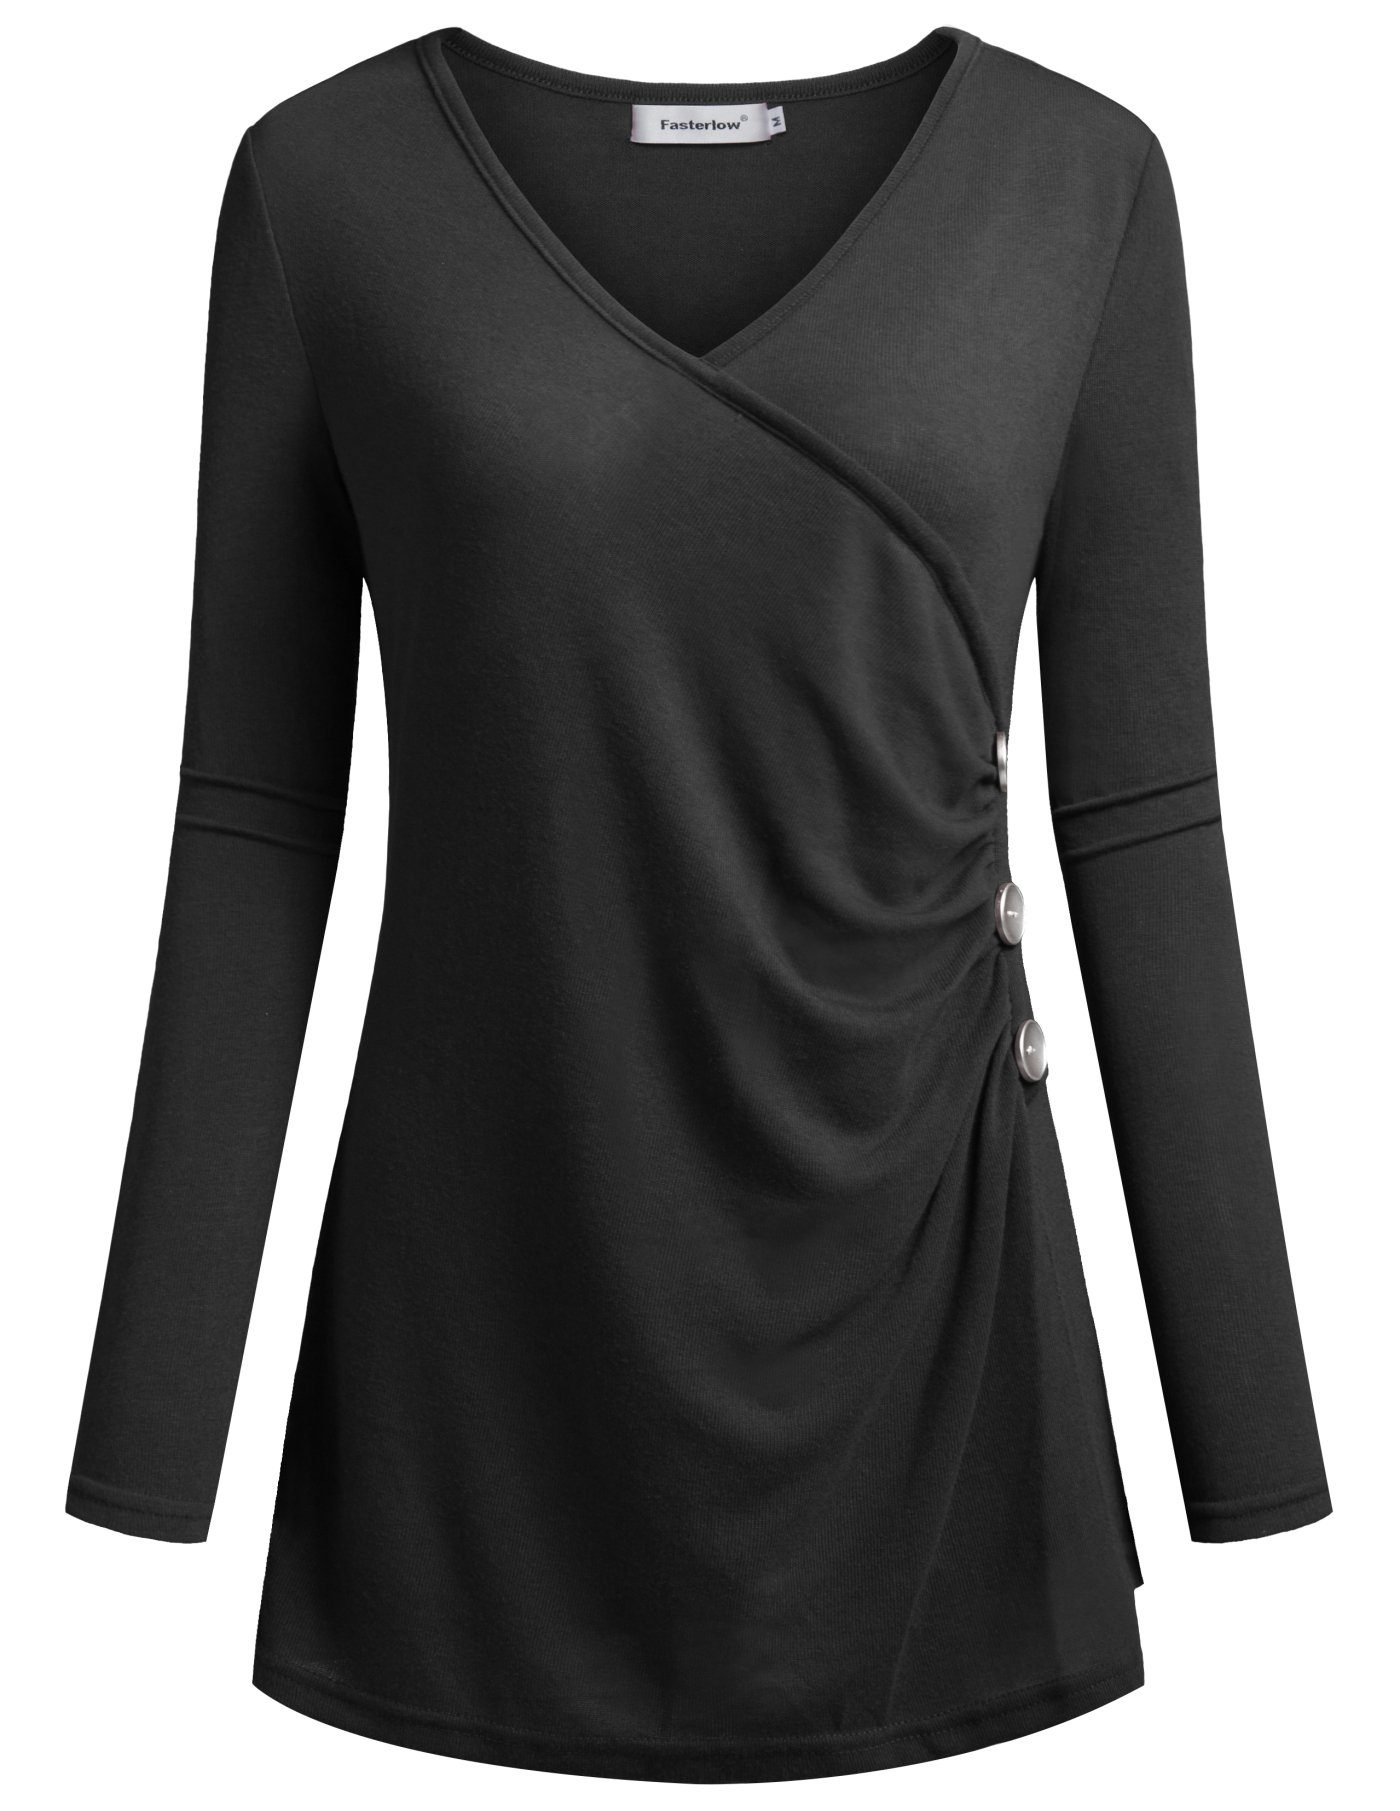 Fasterlow Stylish Womens Tops Long Sleeve Tunic Shirt Office Blouses Black L